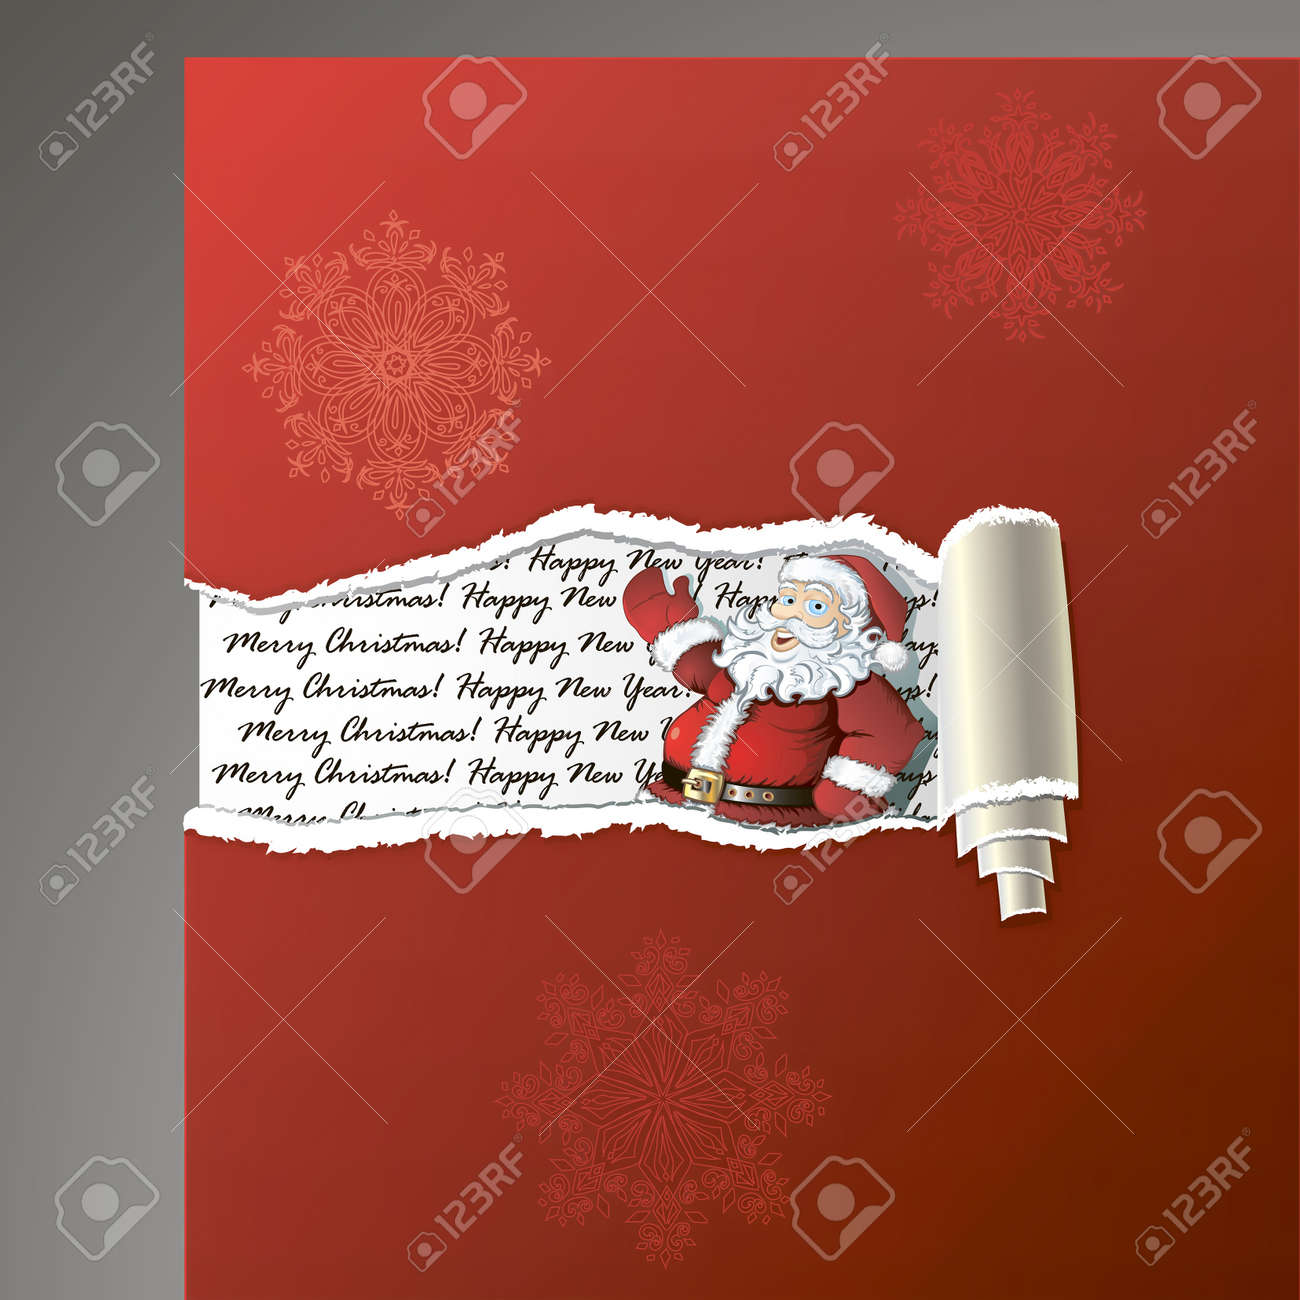 Teared paper background with Santa, hand drawing decorative snowflakes Stock Vector - 11541488